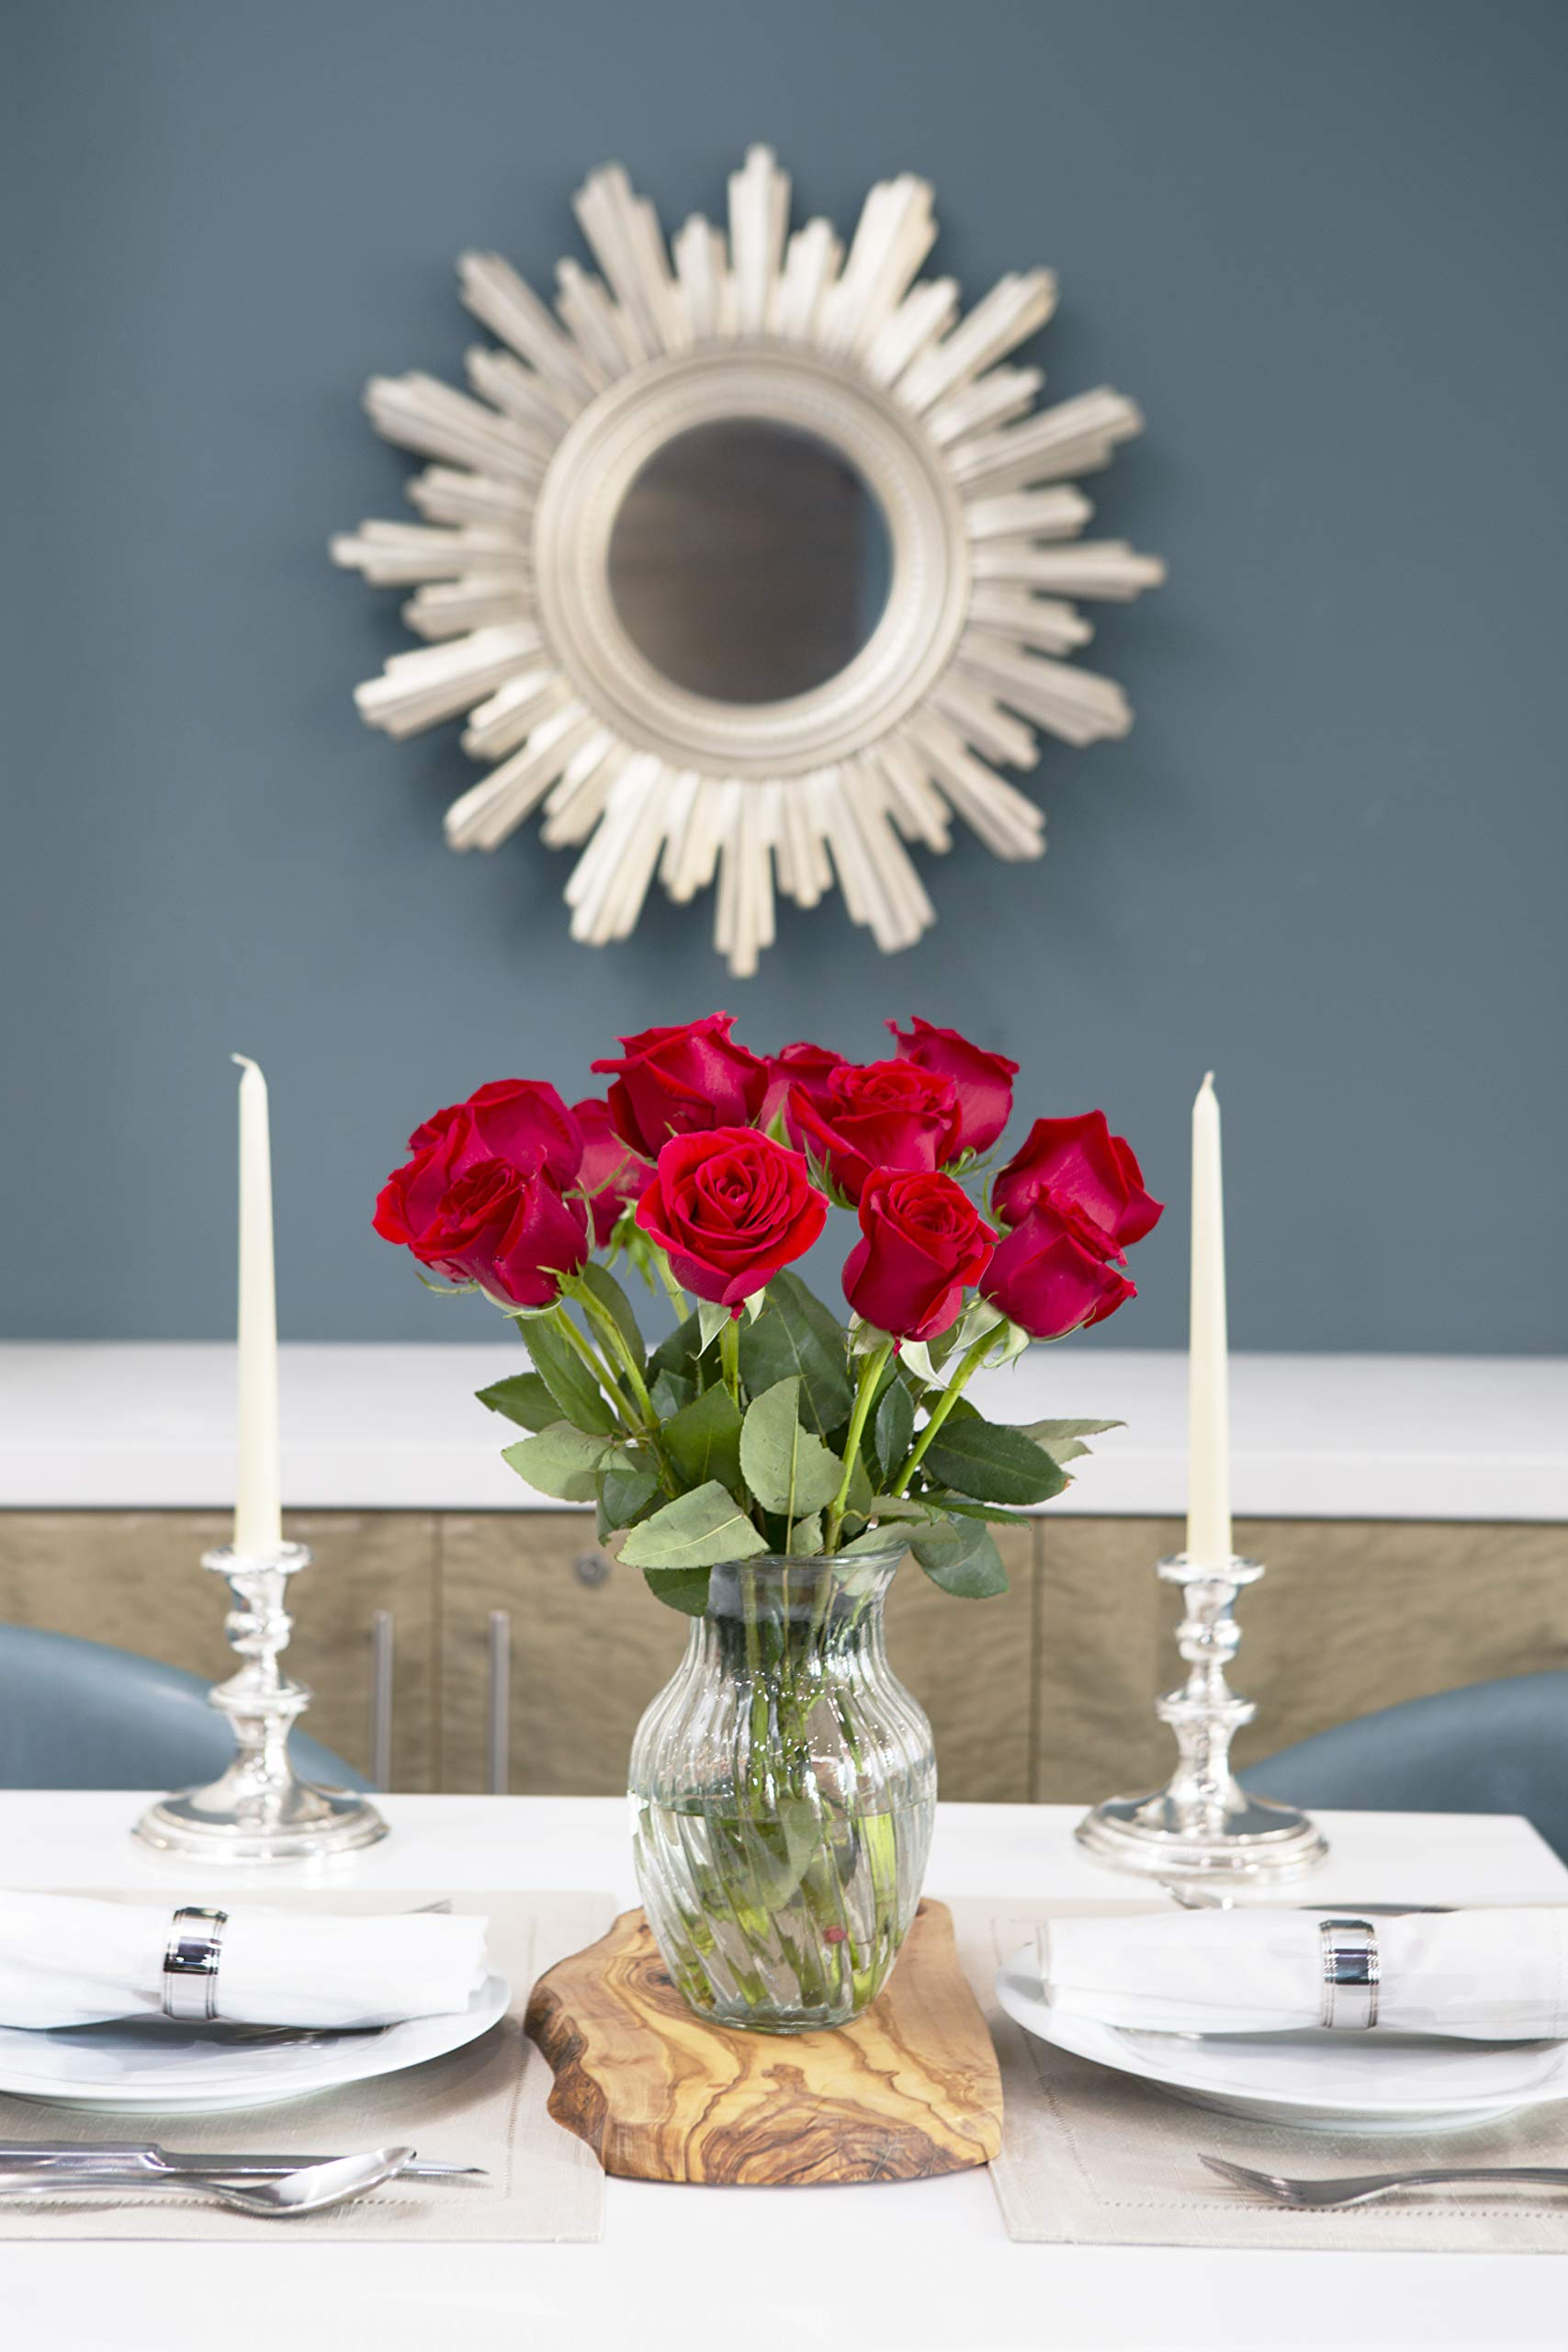 KaBloom The Romantic Classic Bouquet of 12 Fresh Red Roses (Farm-Fresh, Long-Stem) by KaBloom (Image #4)